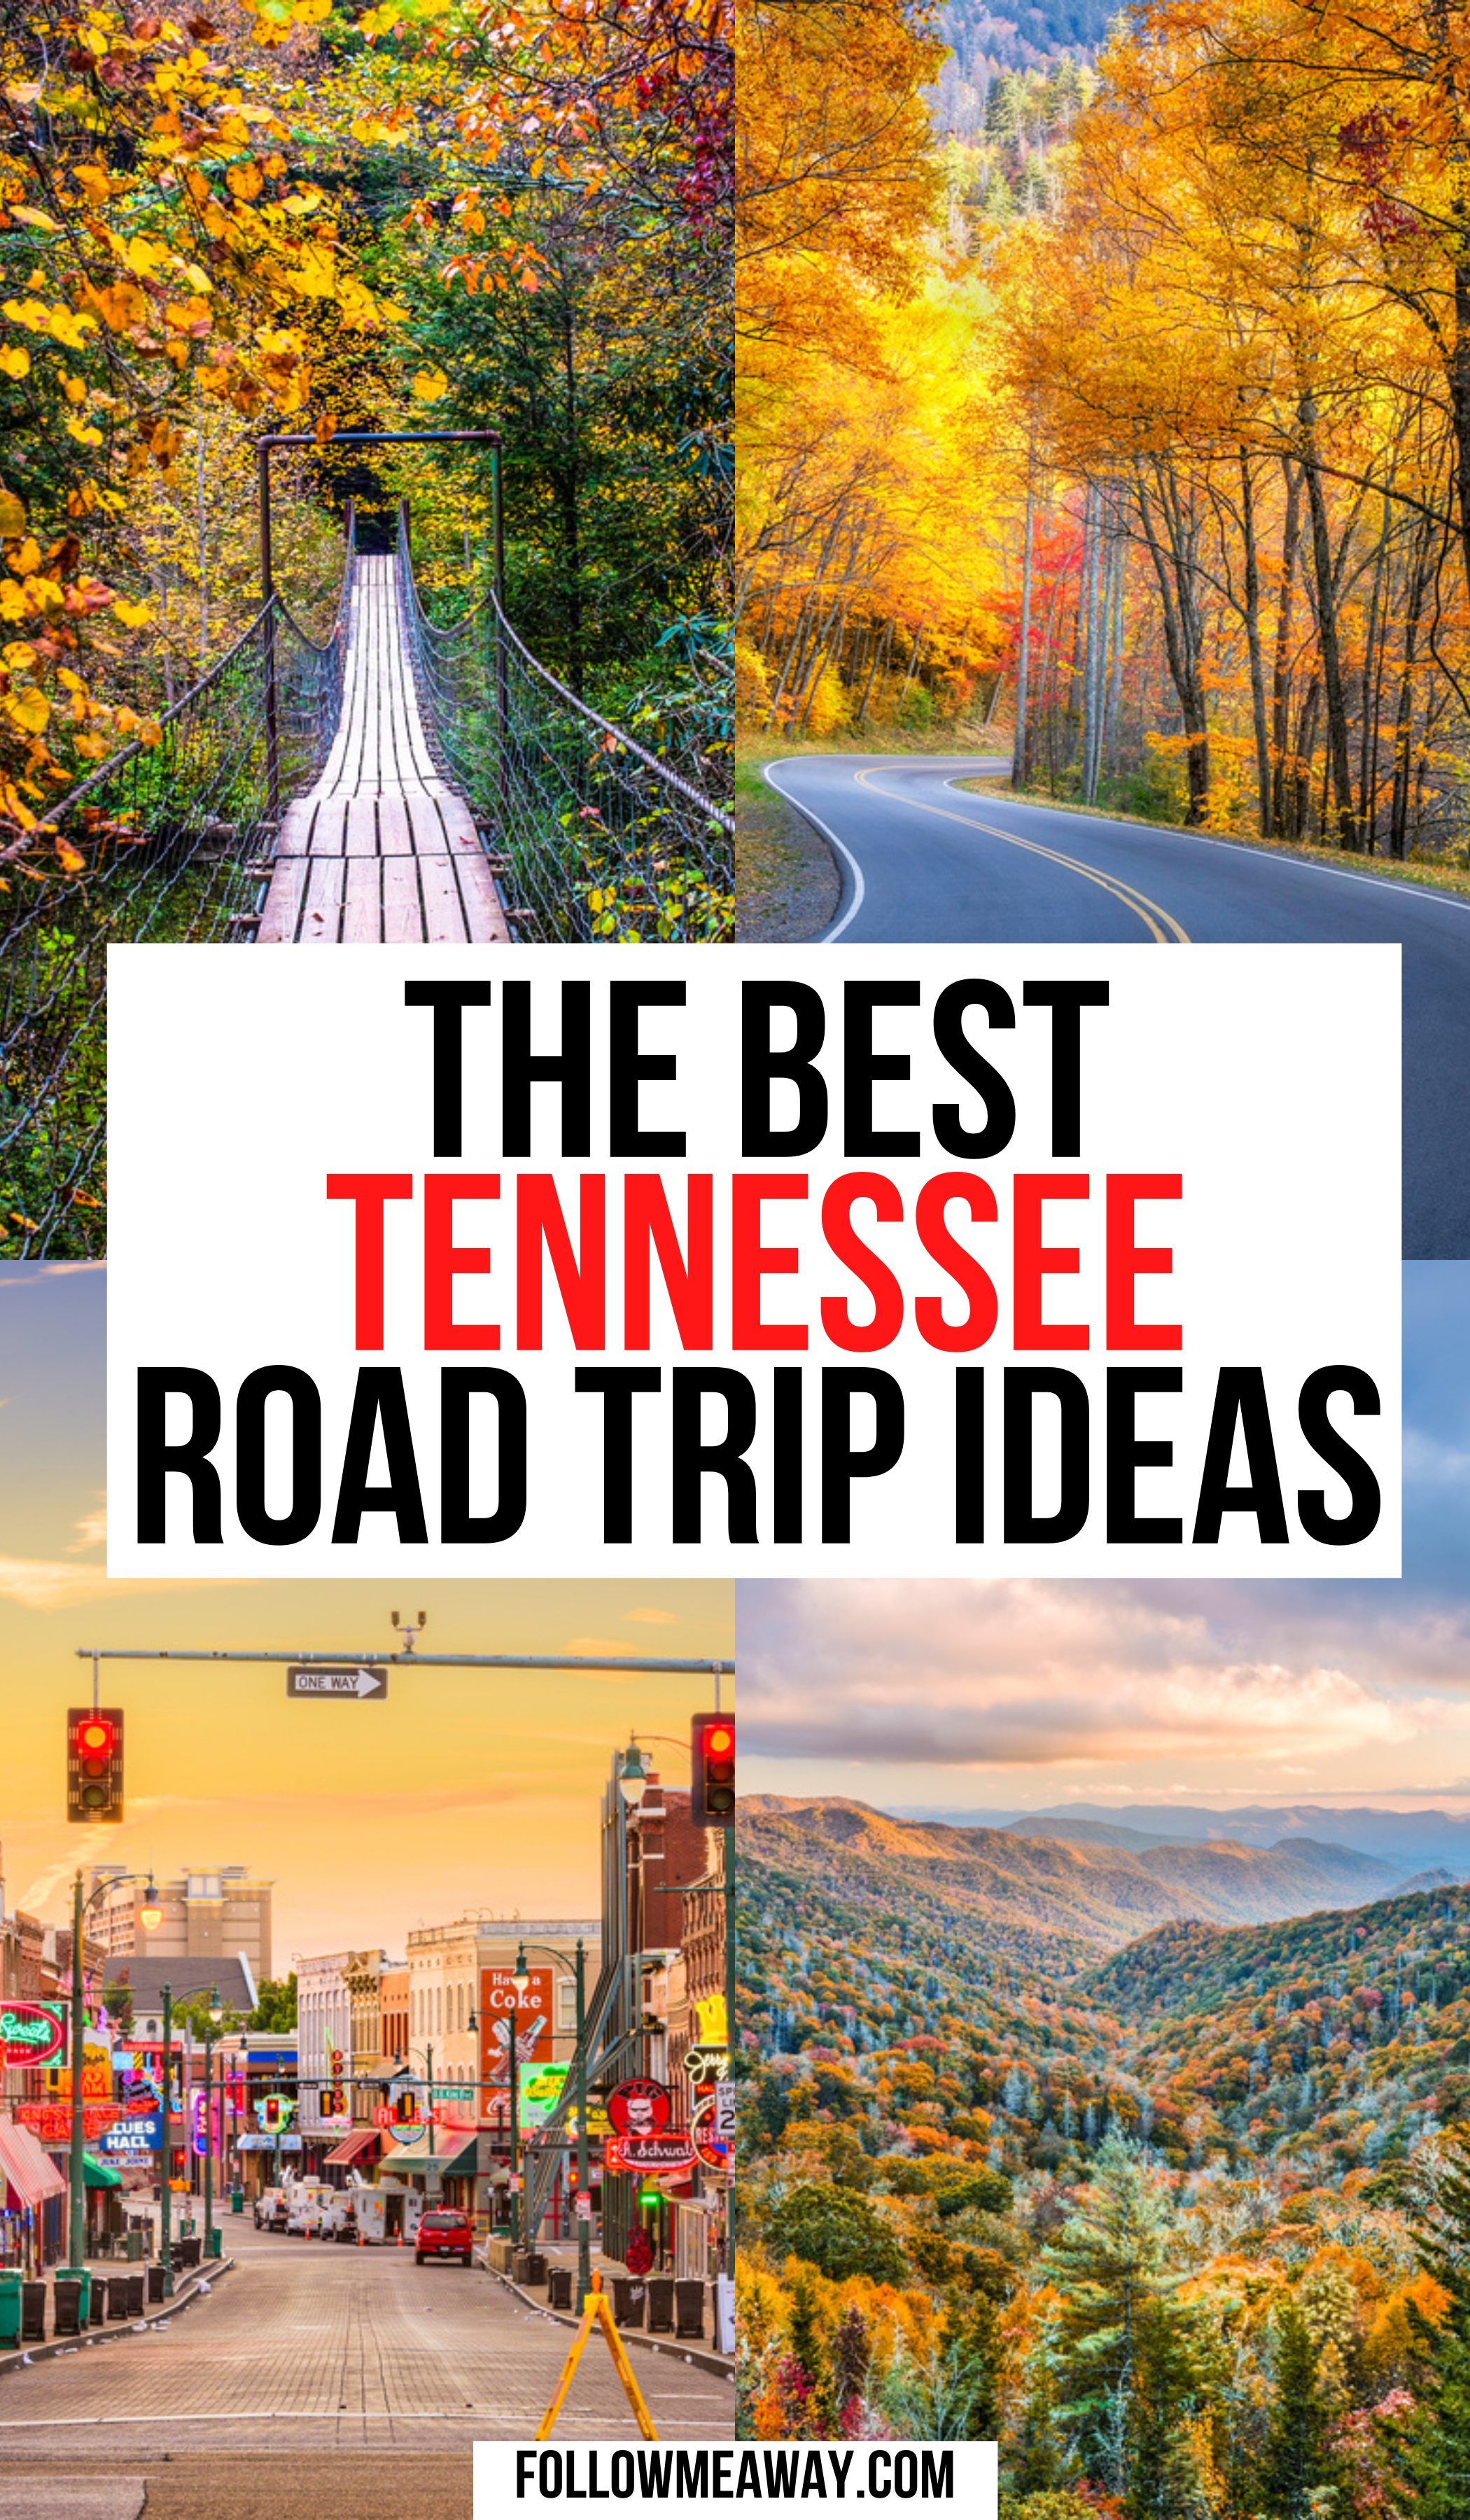 The Perfect Tennessee Road Trip Itinerary You Should Steal | tennessee road trip | tennessee road trip bucket lists | places to visit in tennessee road trips | gatlinburg tennessee road trip | nashville tennessee road trip | travel tennessee road trips | visiting tennessee road trips | places to go in tennessee road trips | things to do in tennessee road trips | smoky mountains tennessee road trips | fun things to do in tennessee road trips | #tennesseetravel #tennesseeroadtrip